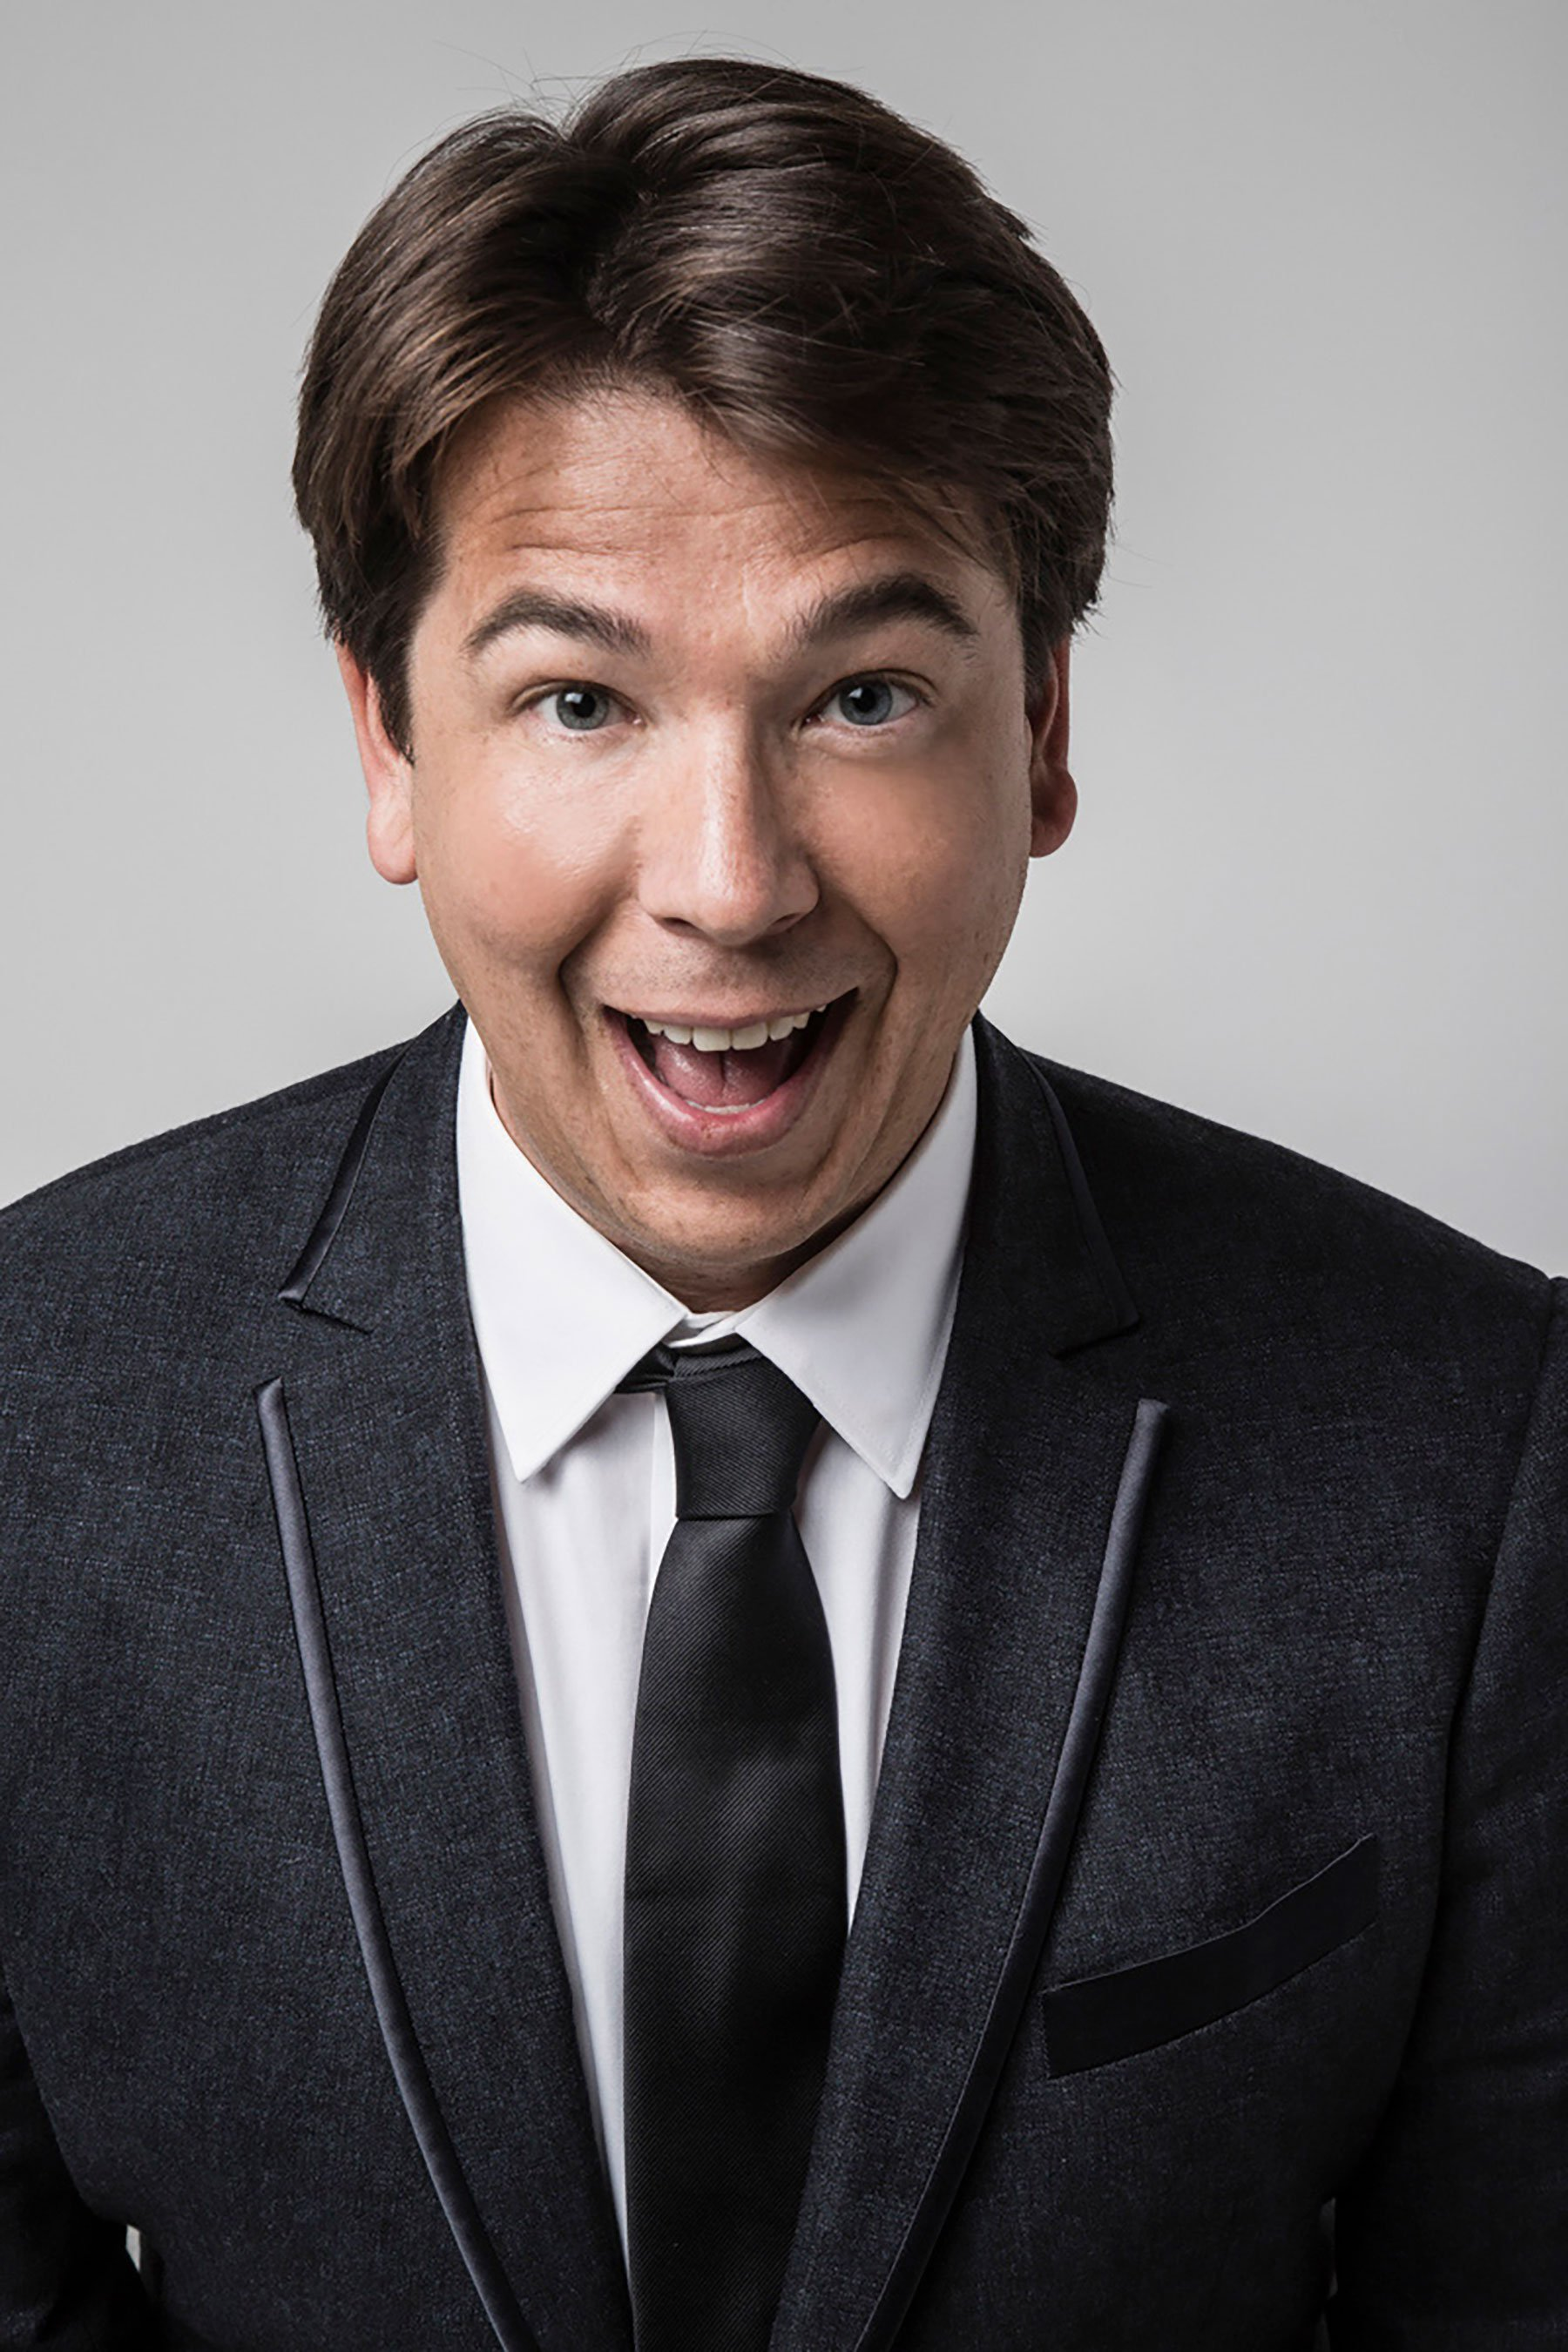 michael mcintyre - photo #2